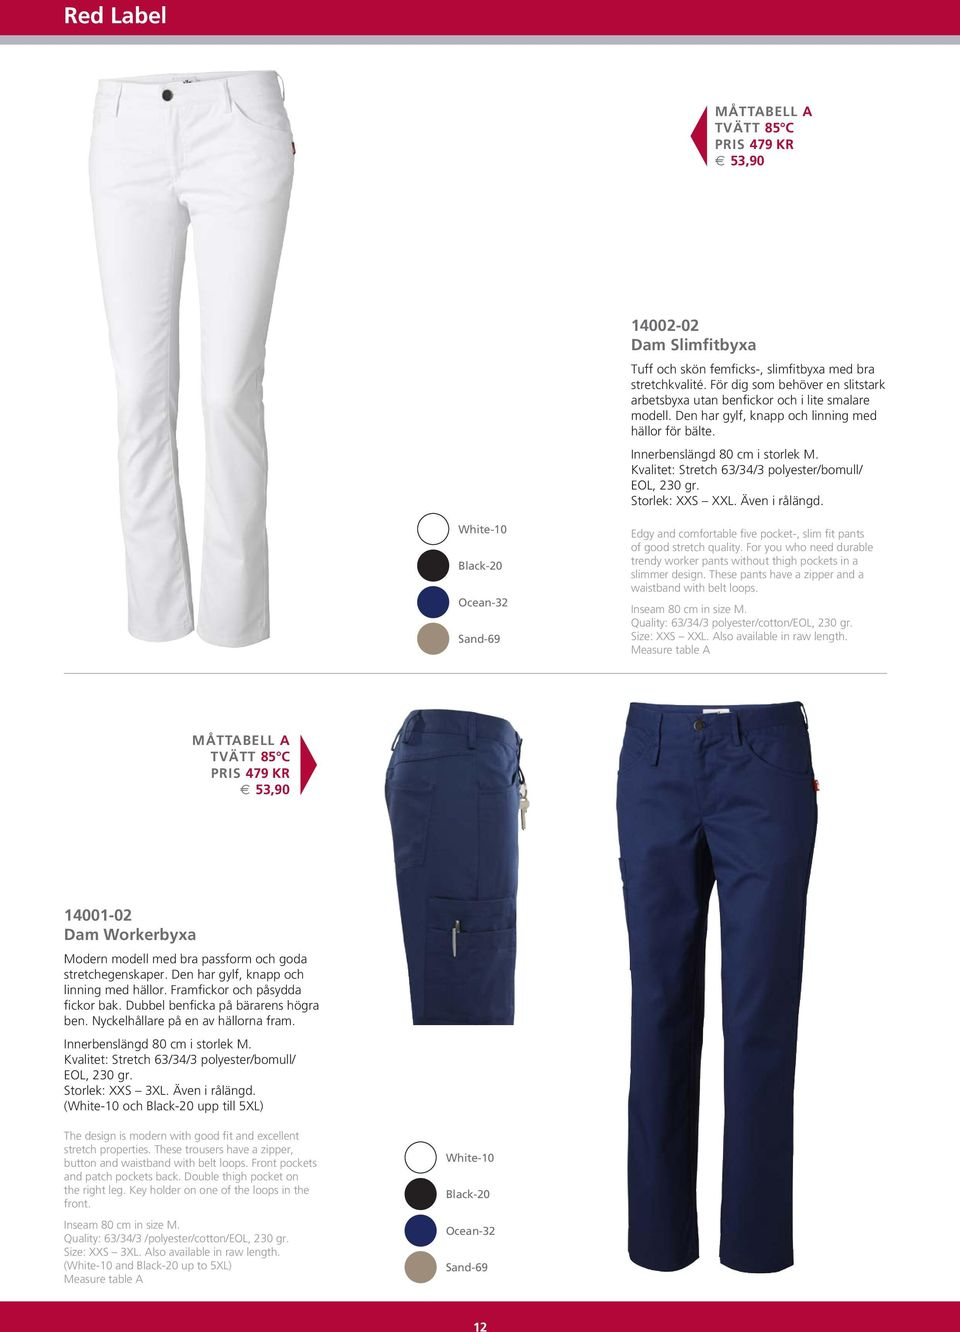 Ocean-32 Sand-69 Edgy and comfortable five pocket-, slim fit pants of good stretch quality. For you who need durable trendy worker pants without thigh pockets in a slimmer design.